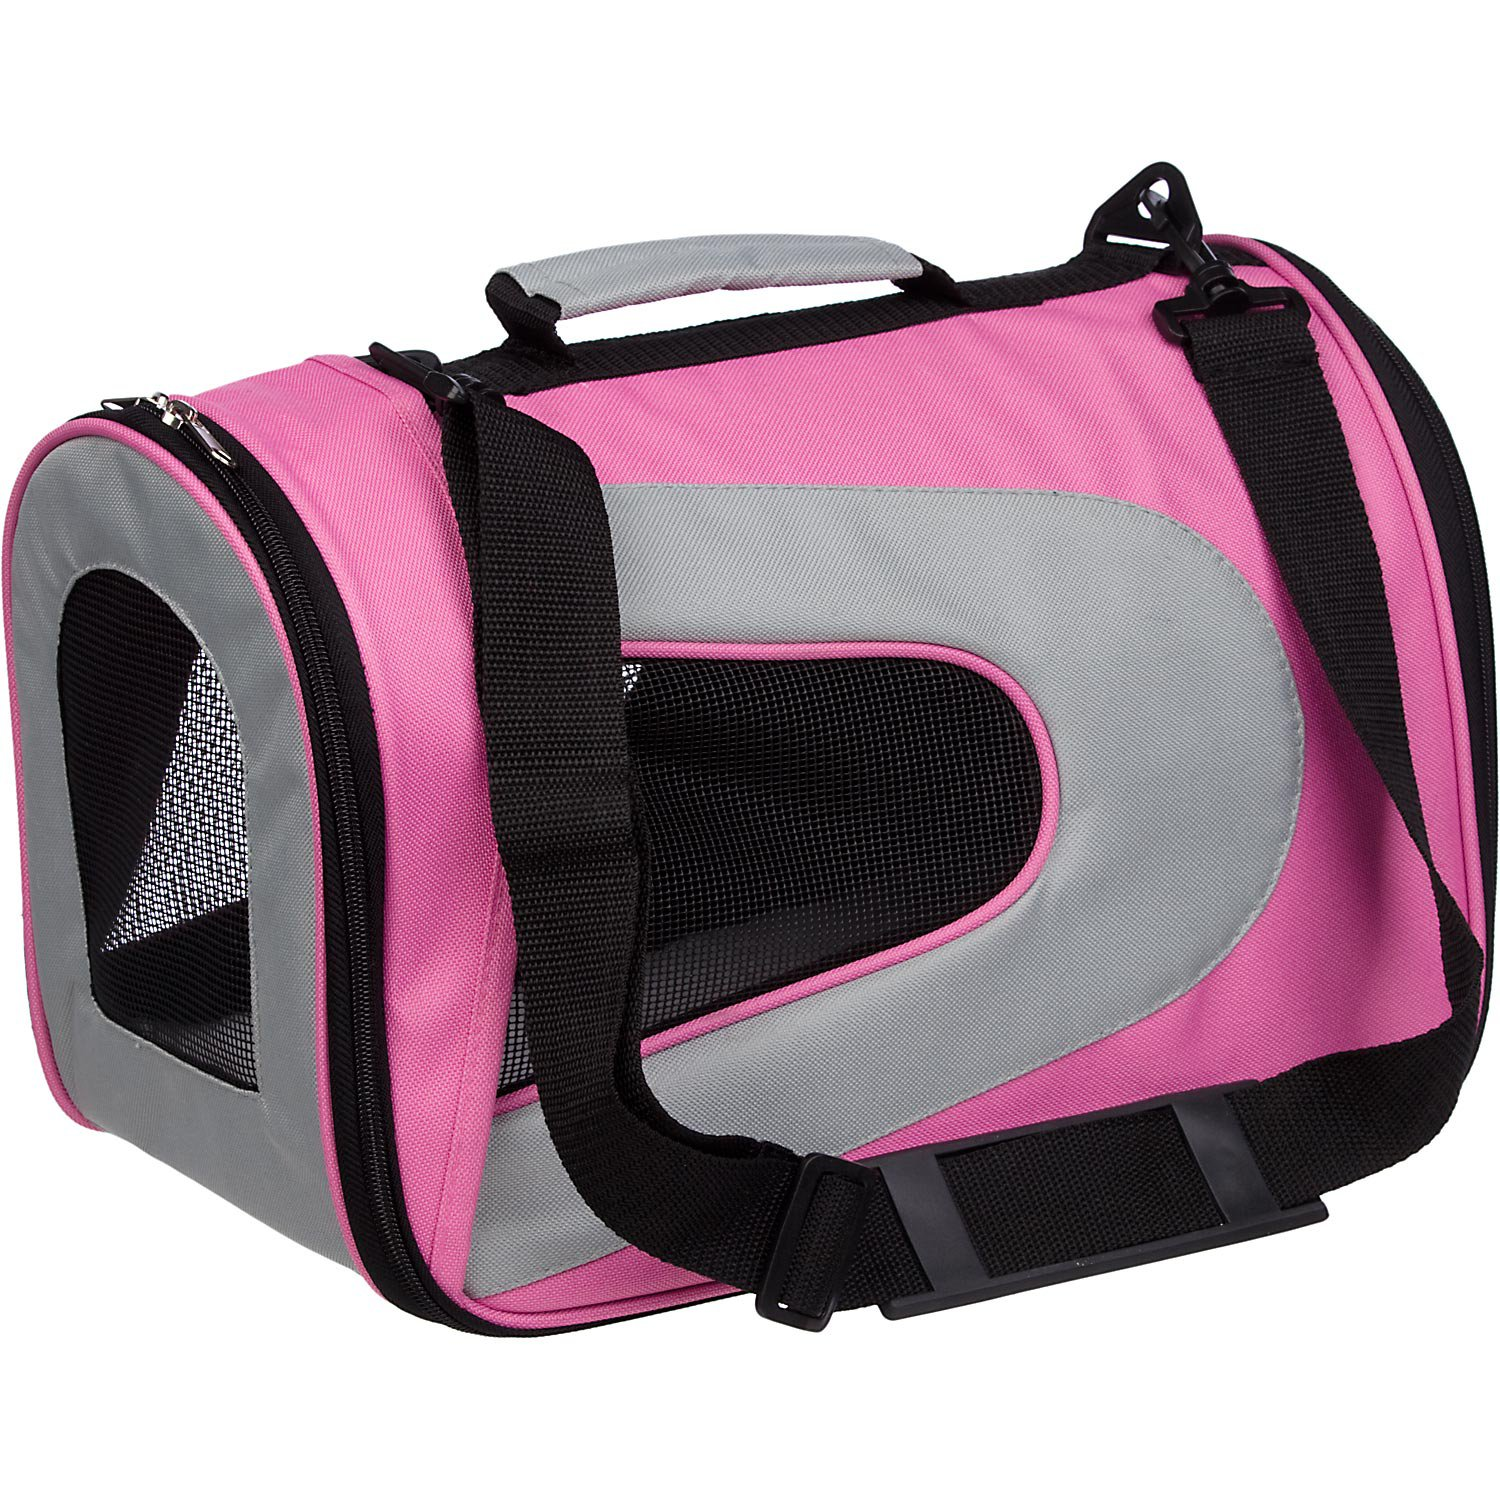 Pet Life Folding Zippered Sporty Mesh Pet Carrier in Pink & Gray